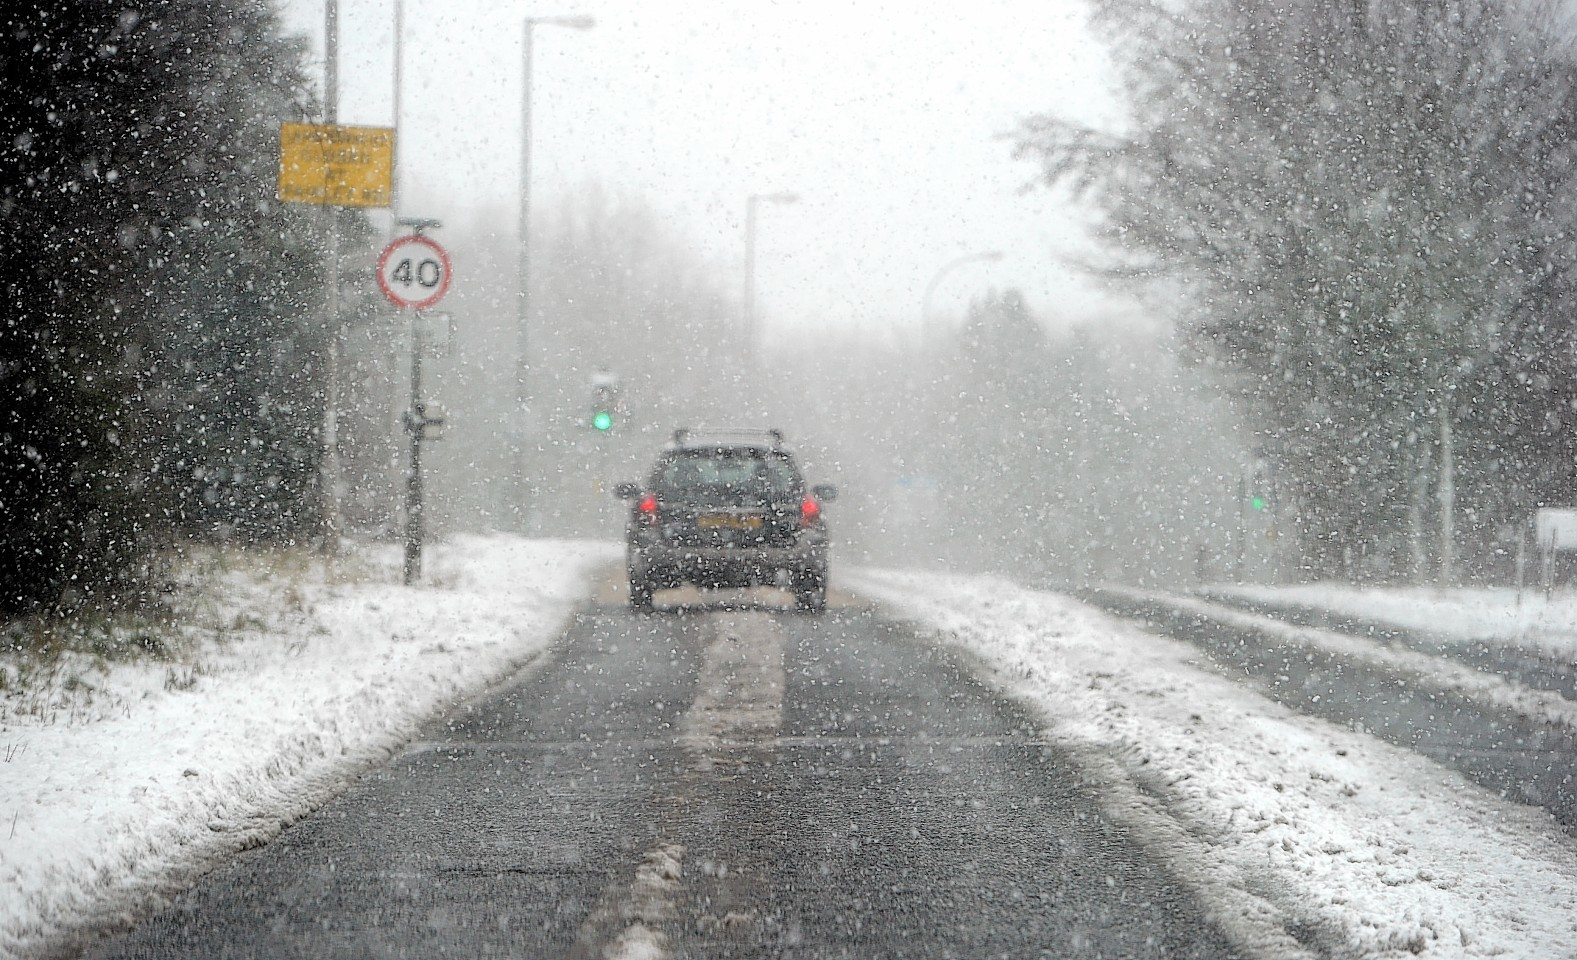 Snow is expected to return to large parts of Scotland this evening